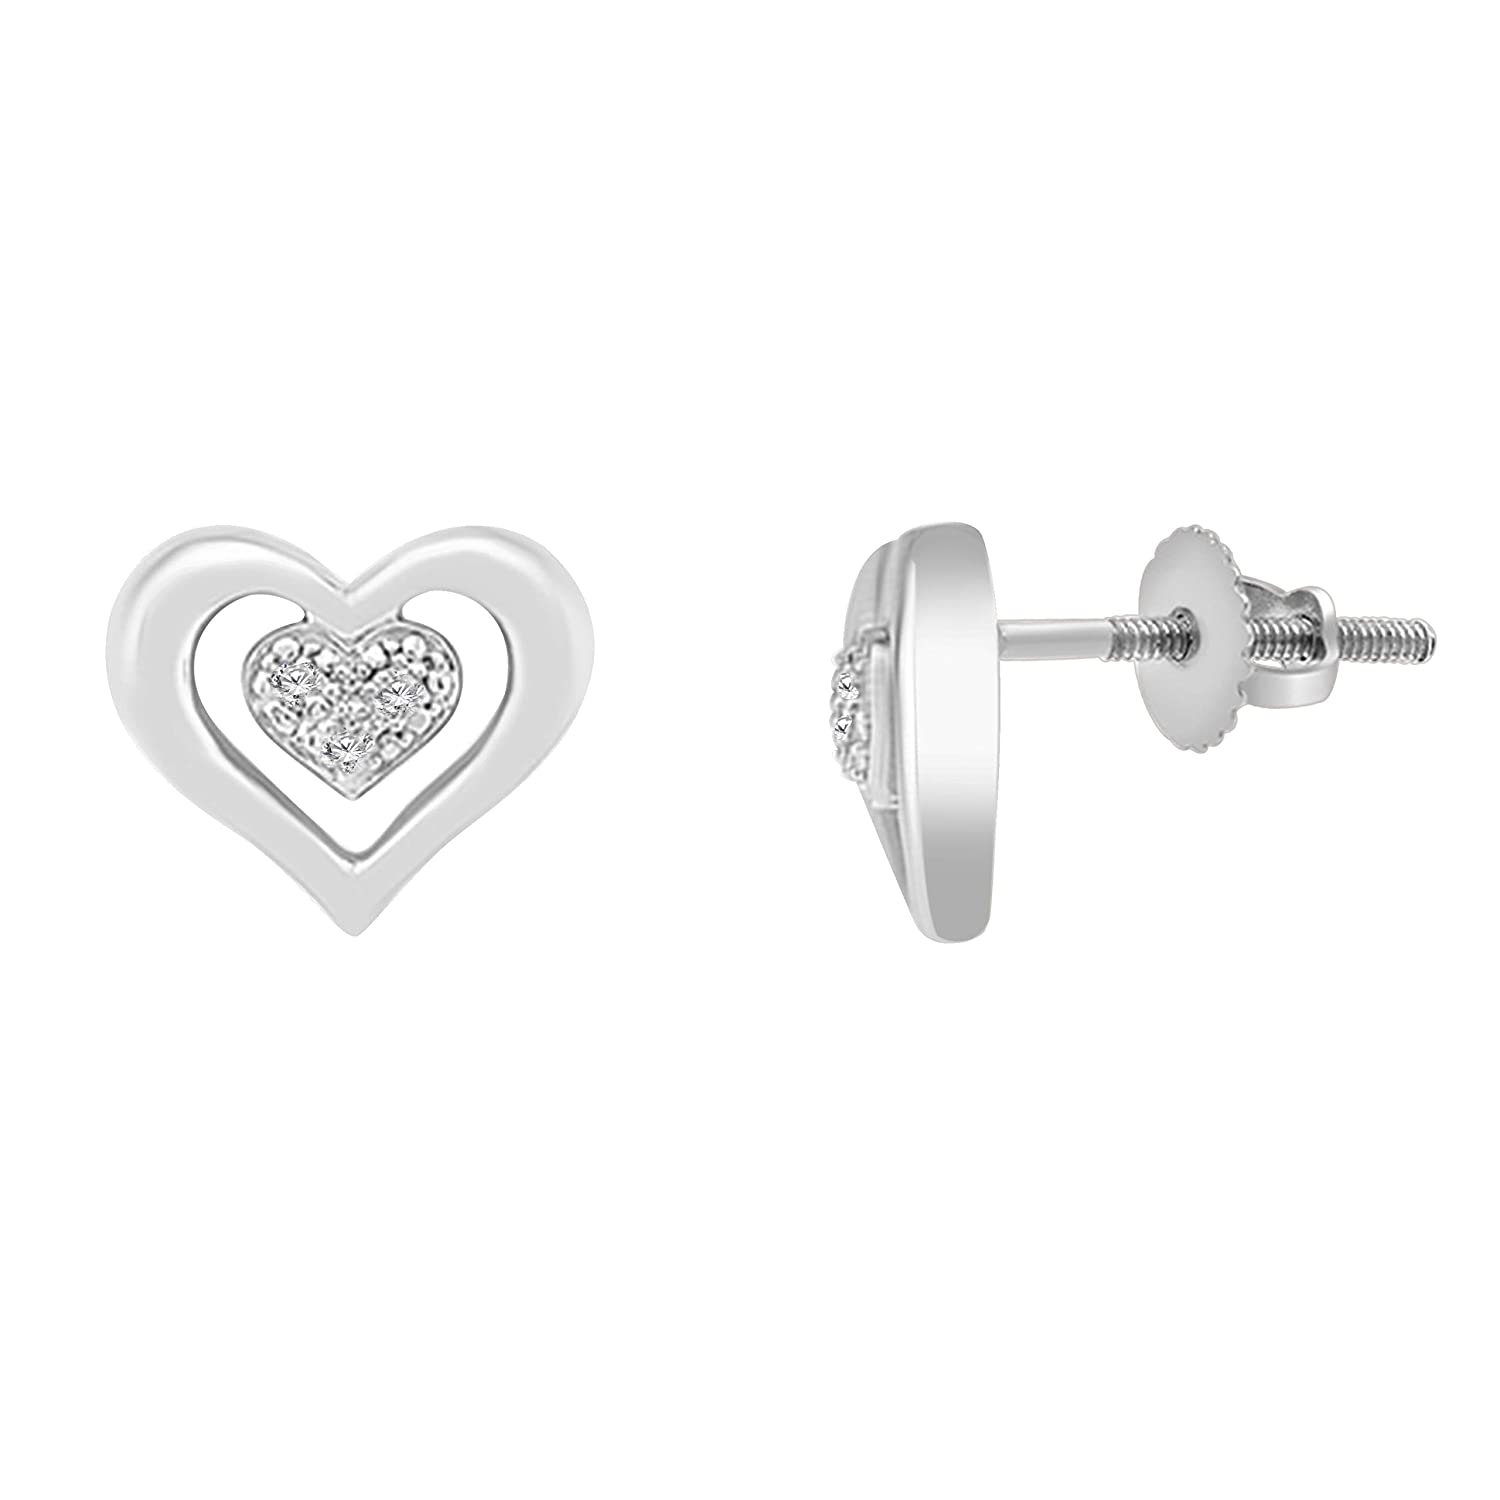 10K Solid Gold Diamond Accent Double Heart Stud Earrings With Screw Back